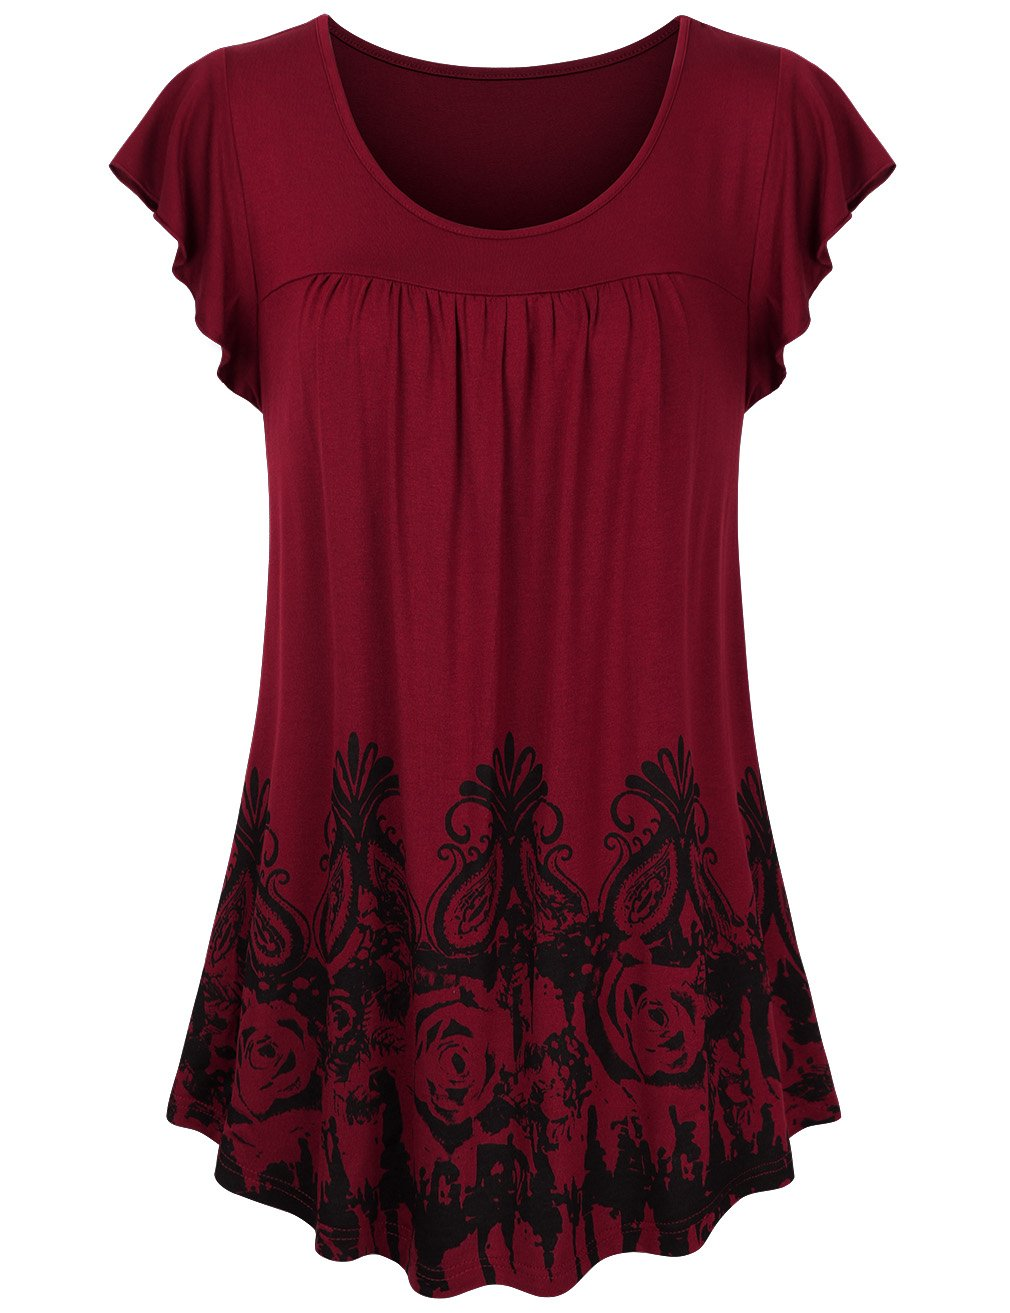 Sunerlory Pleated Tops for Women Short Sleeve, Womens Printed Floral Top Scoop Neck Comfy Casual Pleated Tunic Blouse Wine M